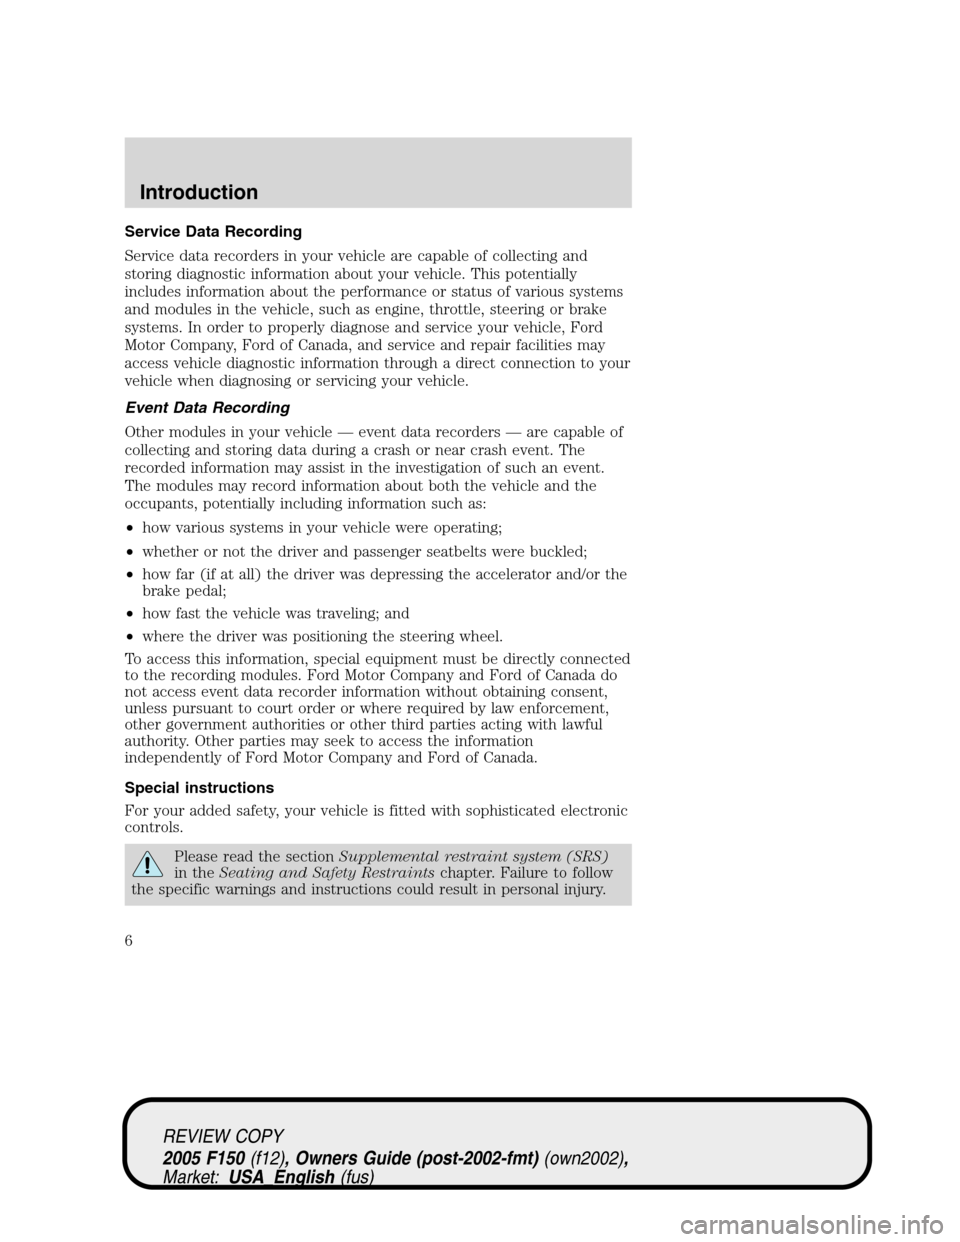 2005 ford f150 owners manual download